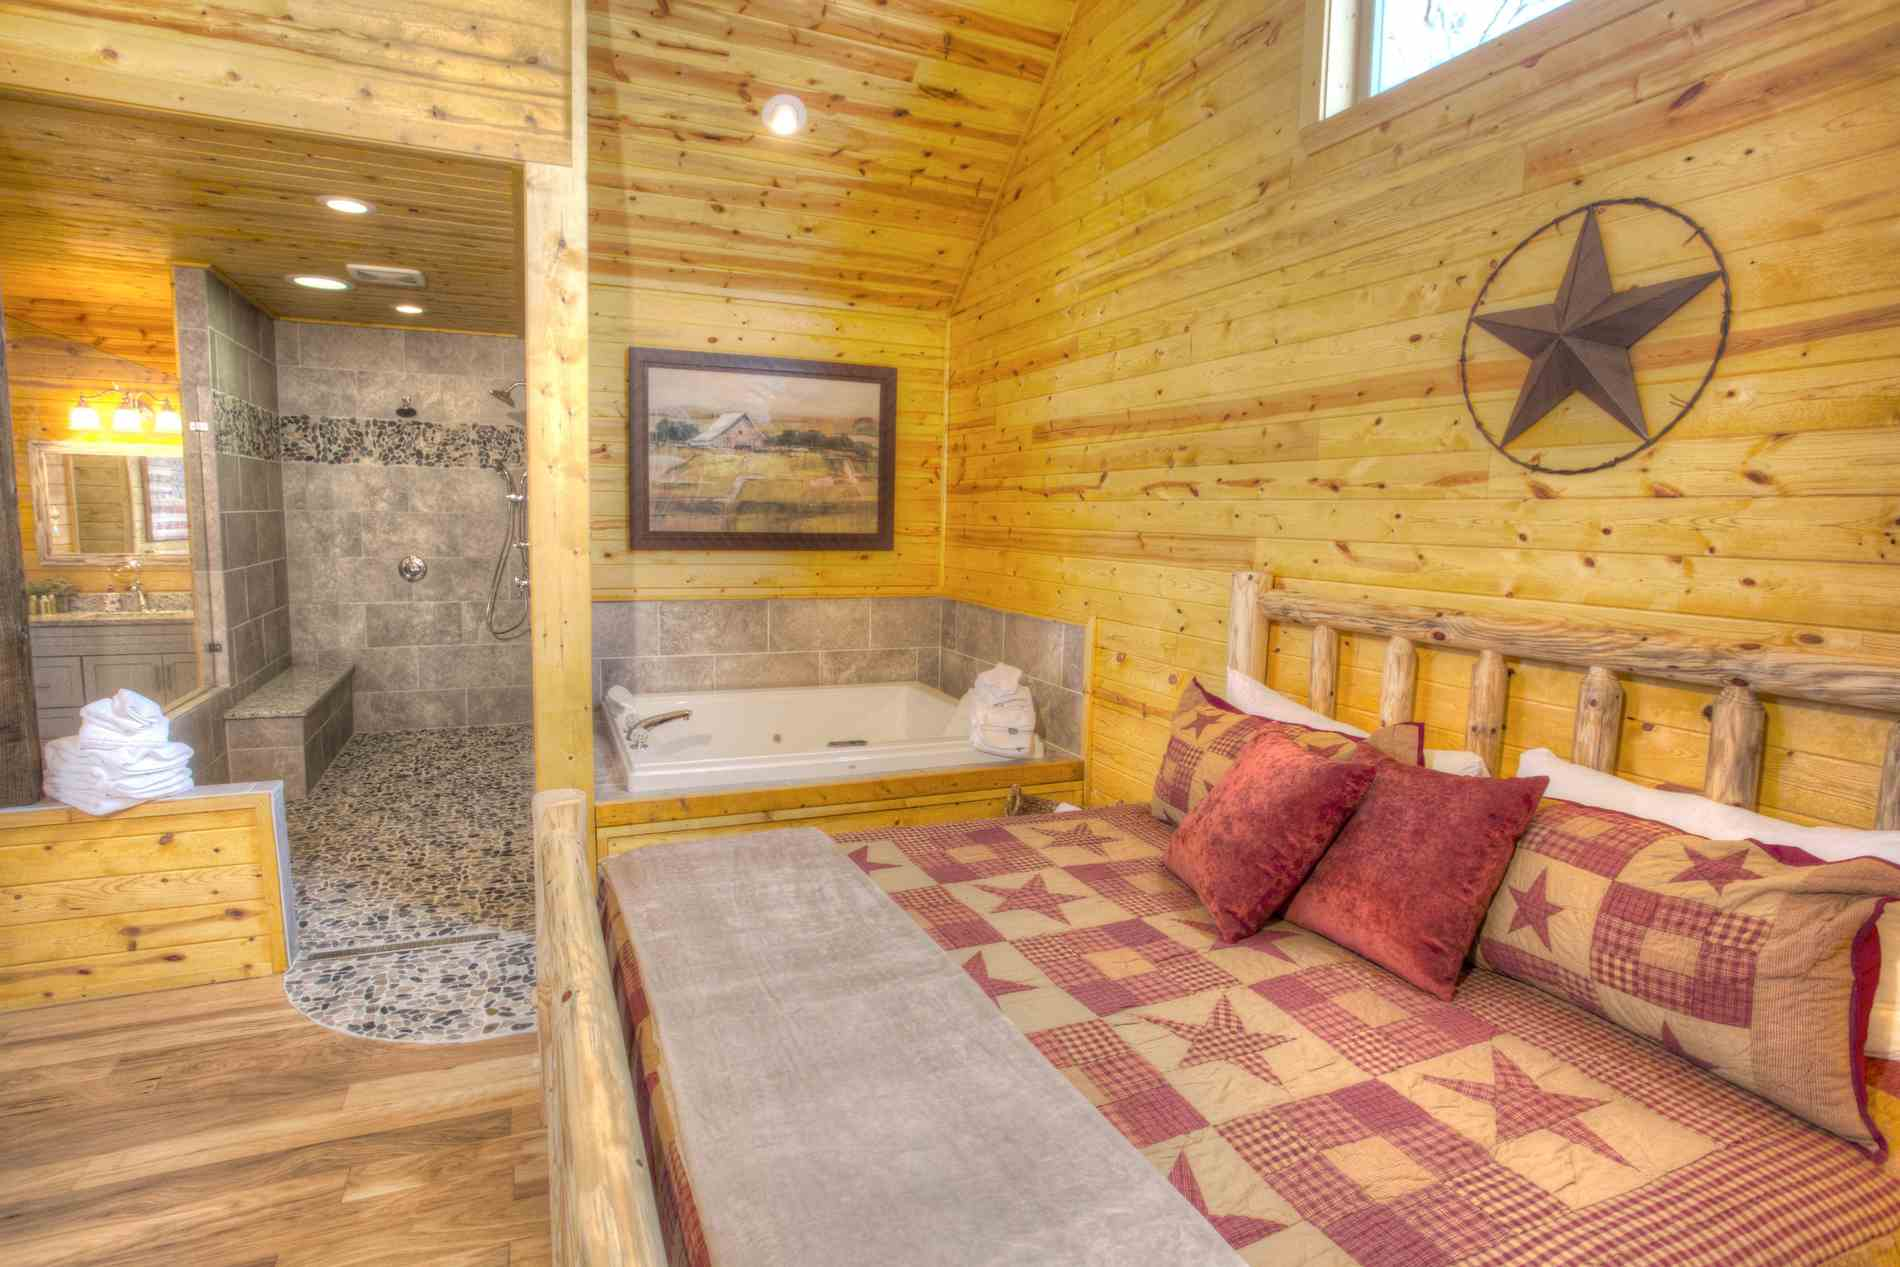 boasts this we cabins and spa travelers helen for a shower in rain those at log ga desire remarkable dreamscapenewmasterandtub rentals every both luxury some dreamscape guests cabin turn recommend detailed